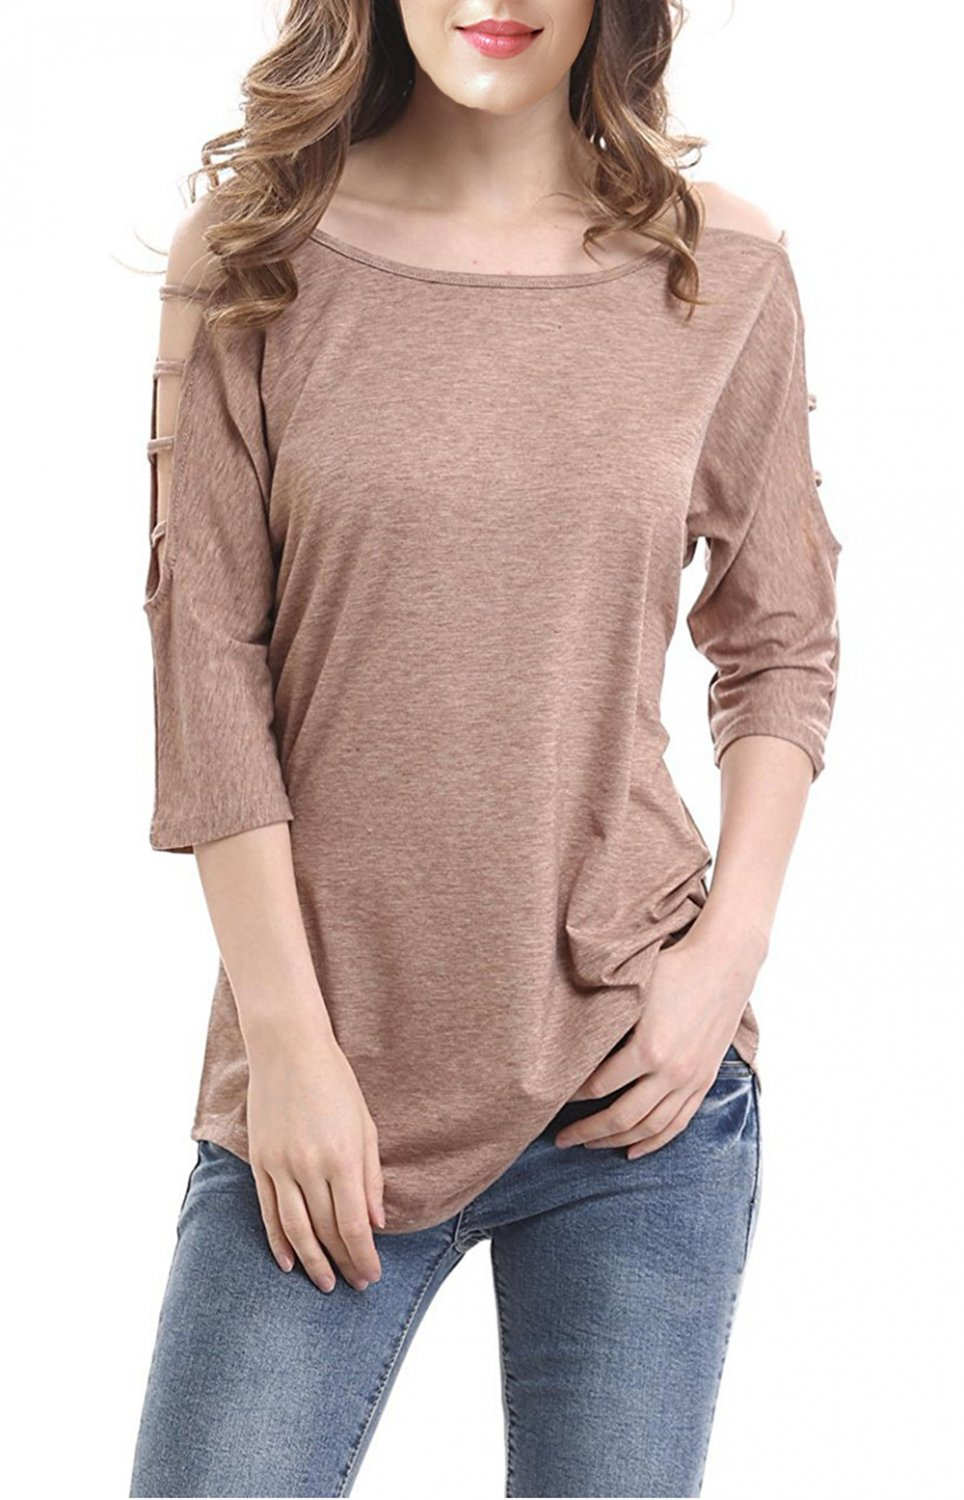 Khaki Women's Casual Loose Hollowed Out Shoulder Three Quarter Sleeve Shirts